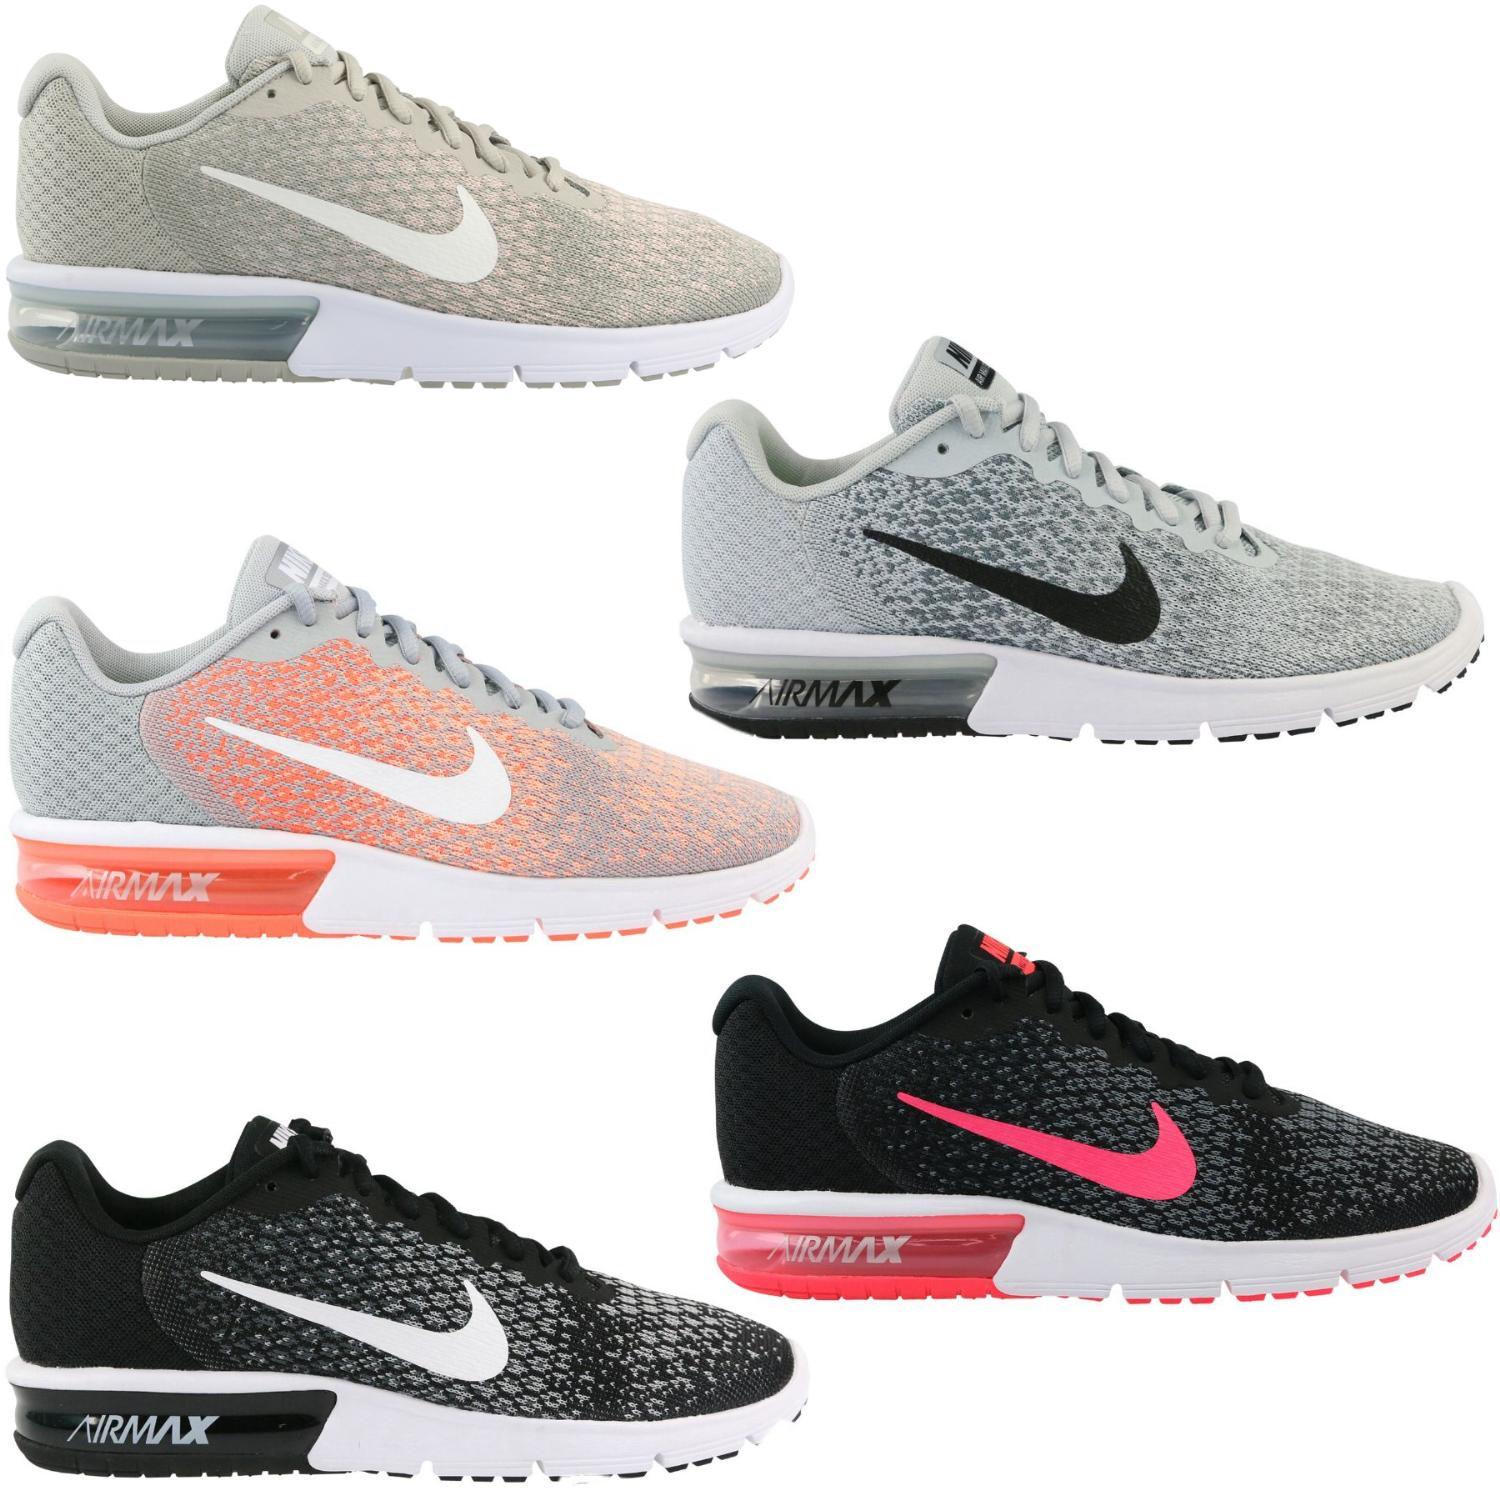 lower price with c5b0c 17aae Nike Air Max Sequent 2